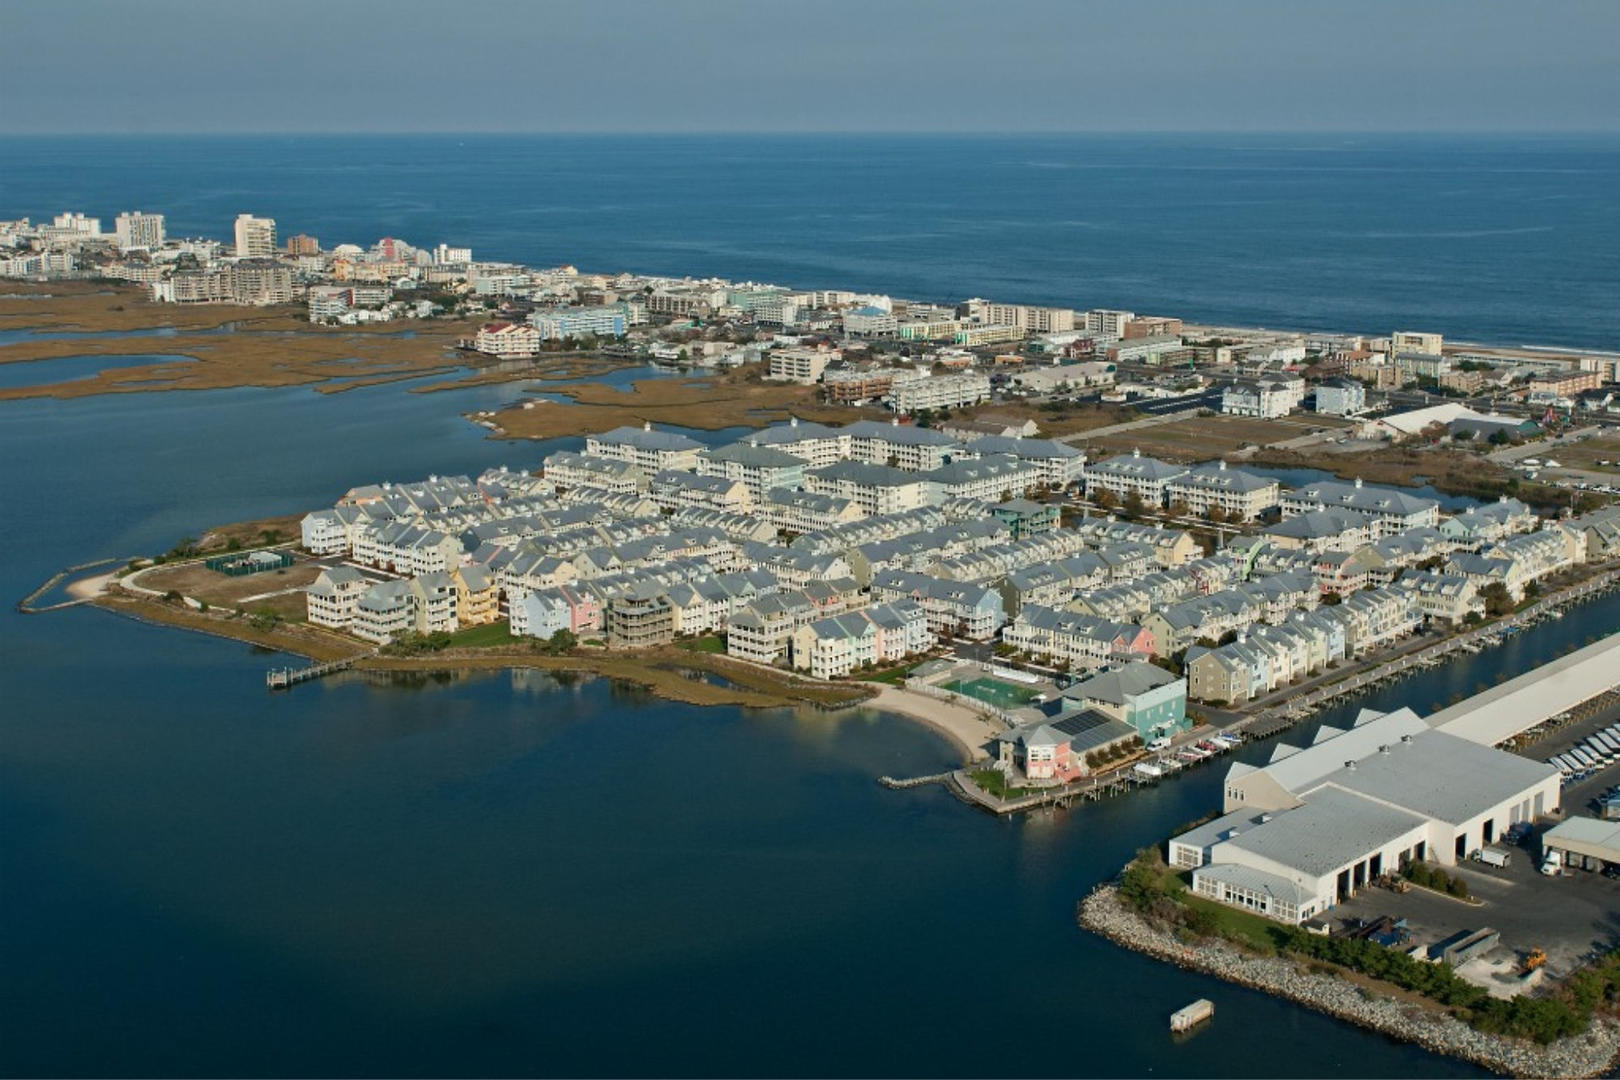 Aerial View of Sunset Island on 67th St. in Ocean City